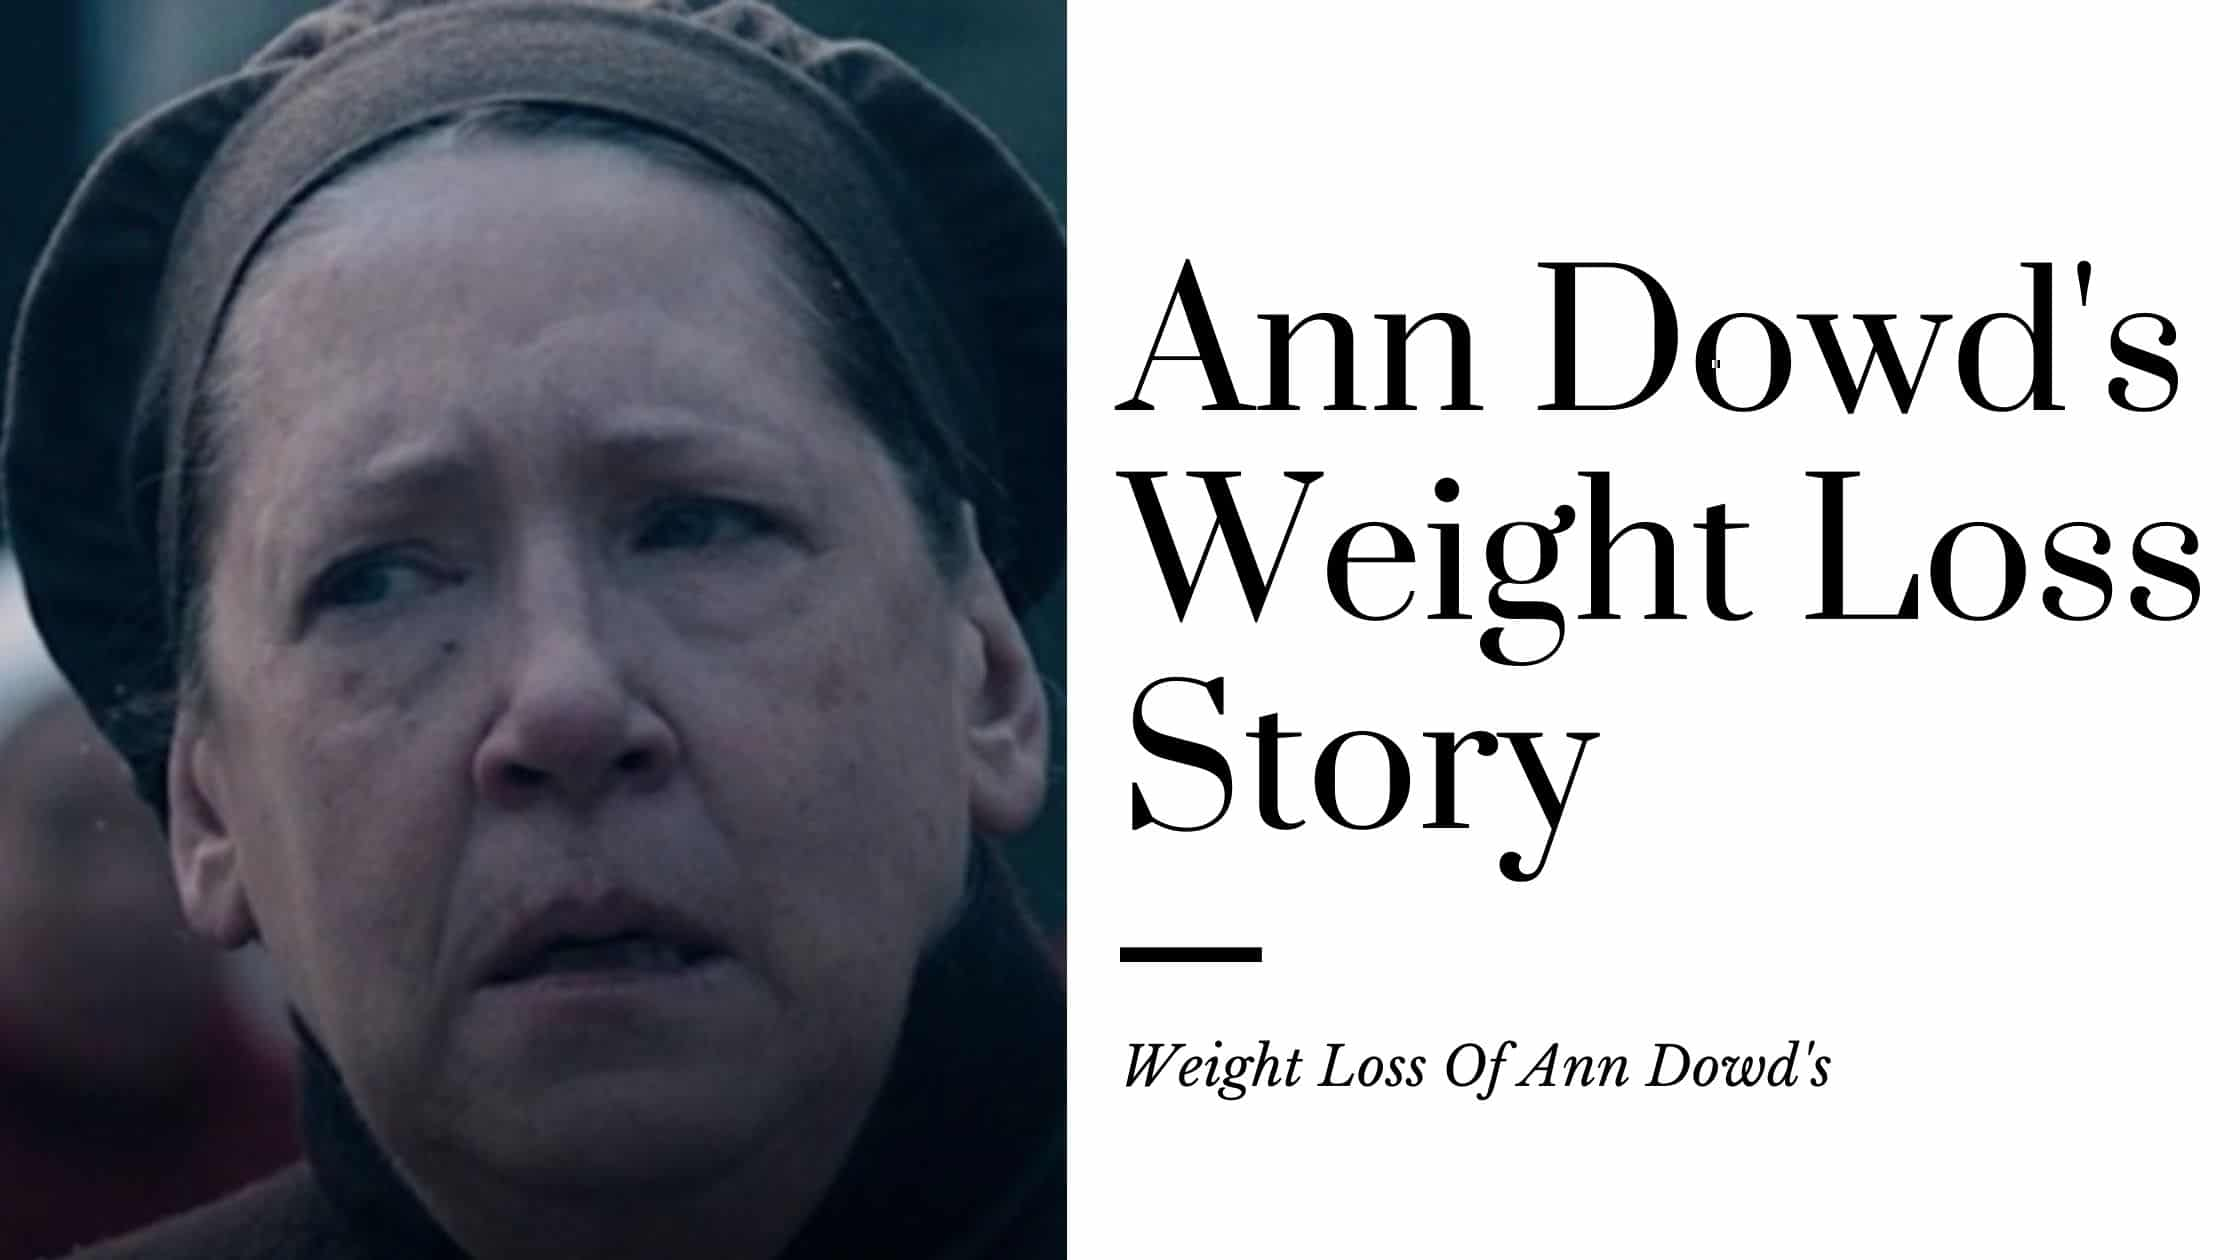 Ann Dowd's Weight Loss Story